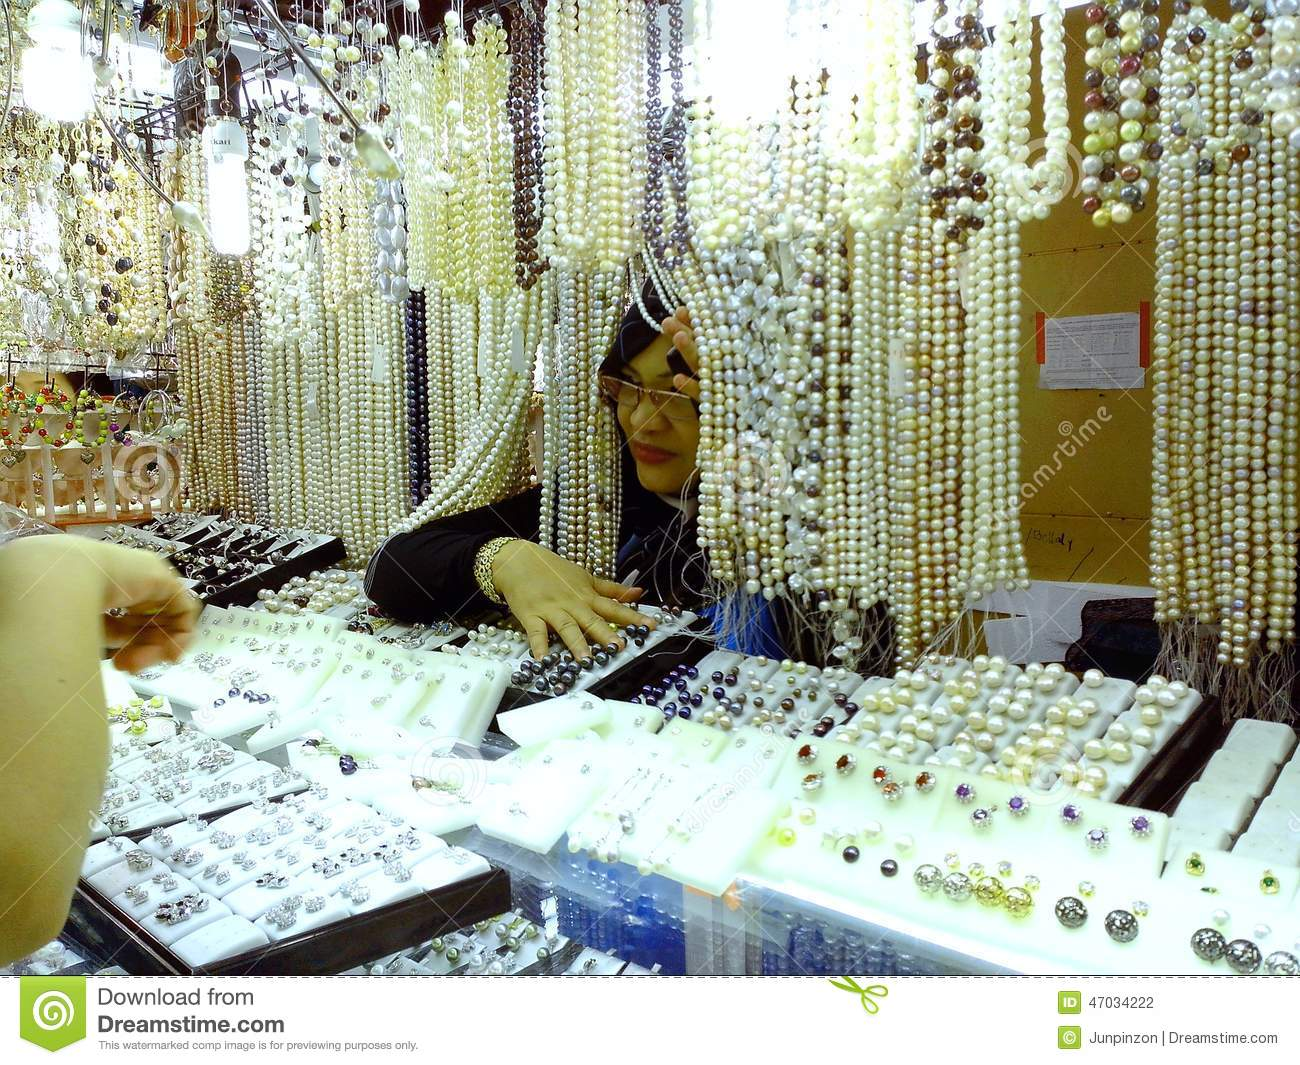 Bazaar shops in greenhills shopping center editorial for Jewelry sale online shopping